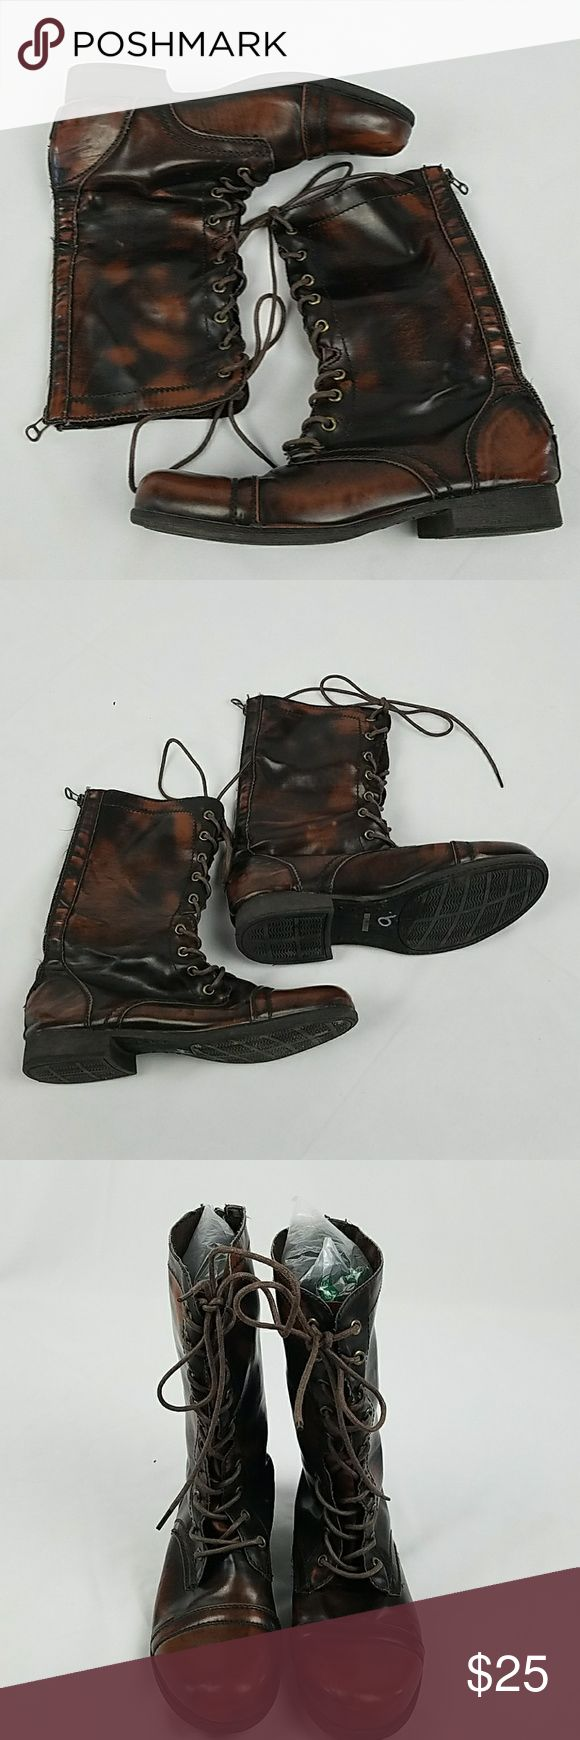 De Blossem Collection women 9 brown combat boots De Blossem Collection women 9 brown combat flat boots steampunk. De Blossom Collection Shoes Combat & Moto Boots